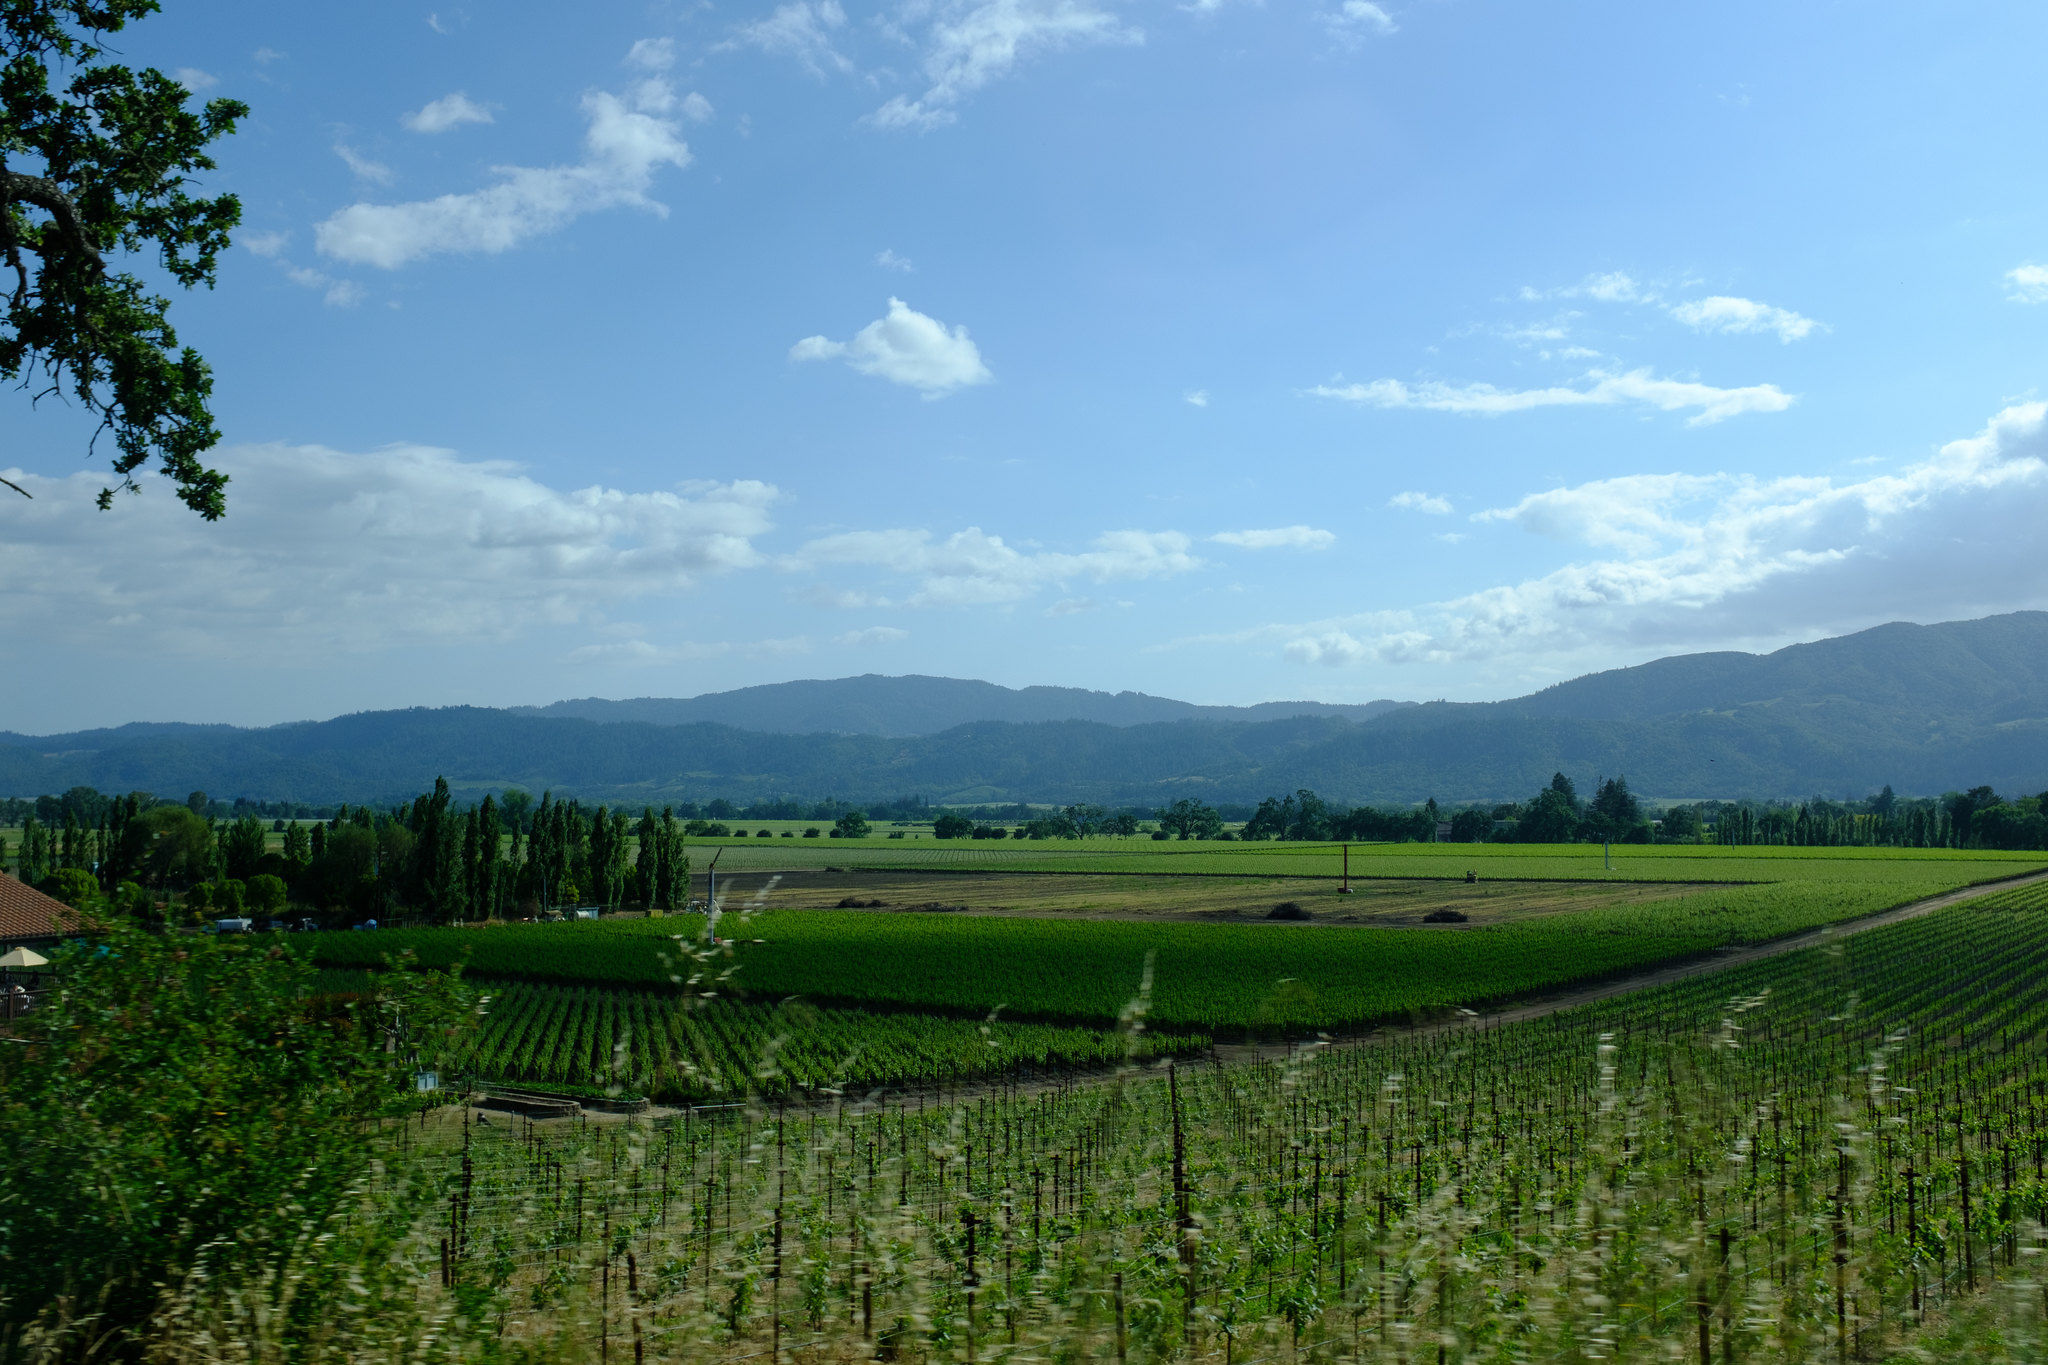 A photo of vineyards